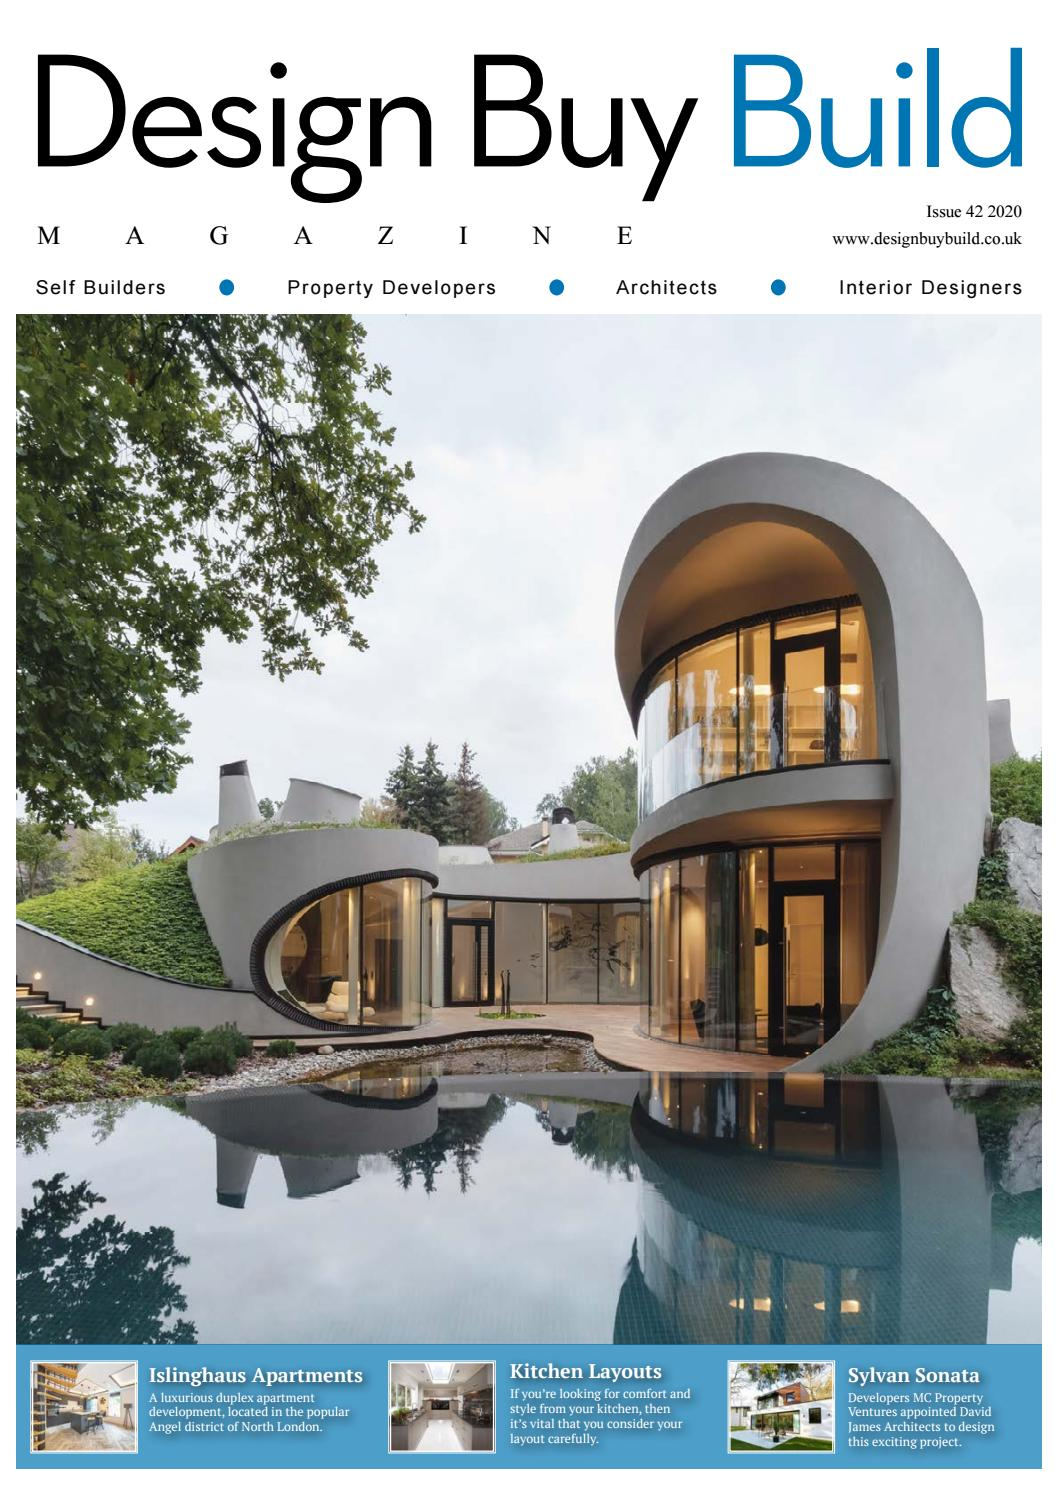 Design Buy Build Issue 42 2020 By Mh Media Global Issuu